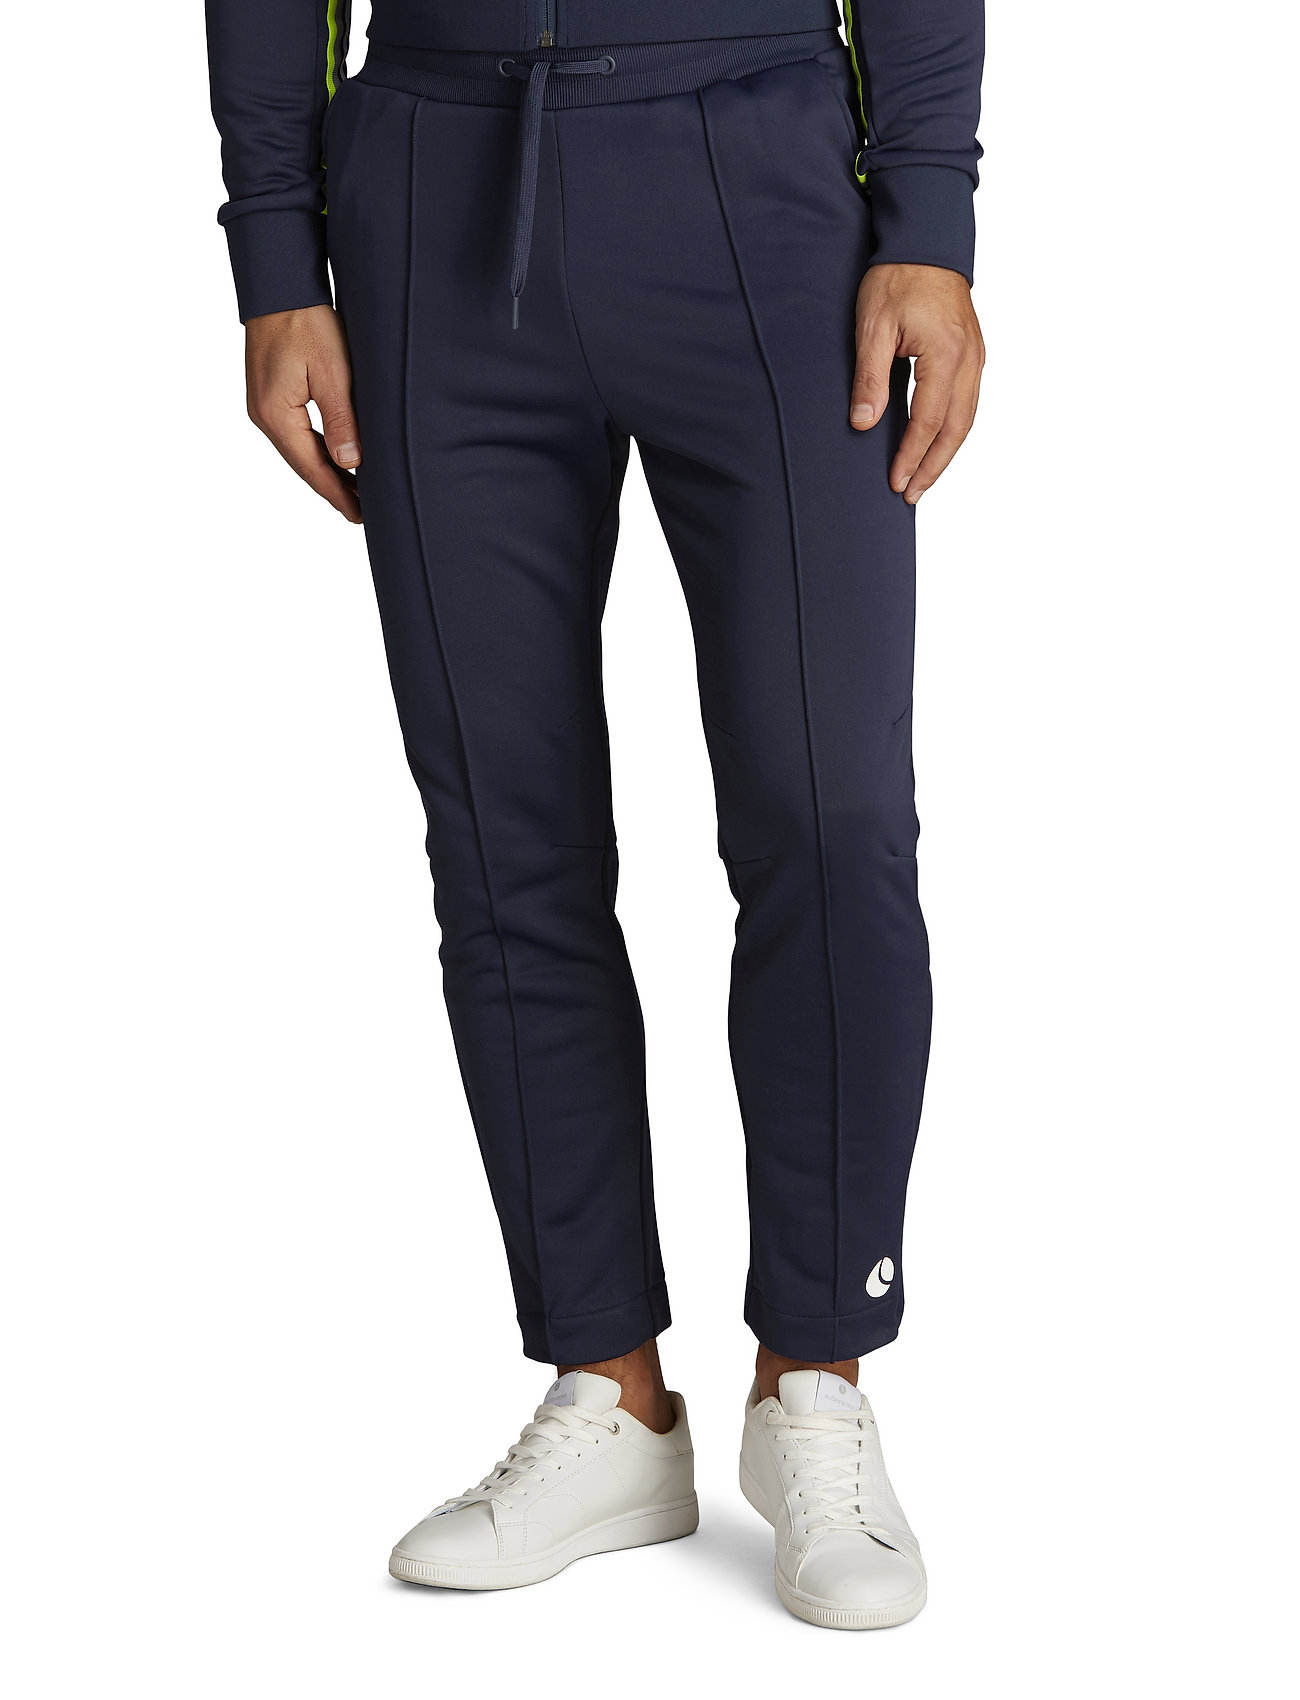 Björn Borg - TODD TRACK PANTS - sweatpants - peacoat